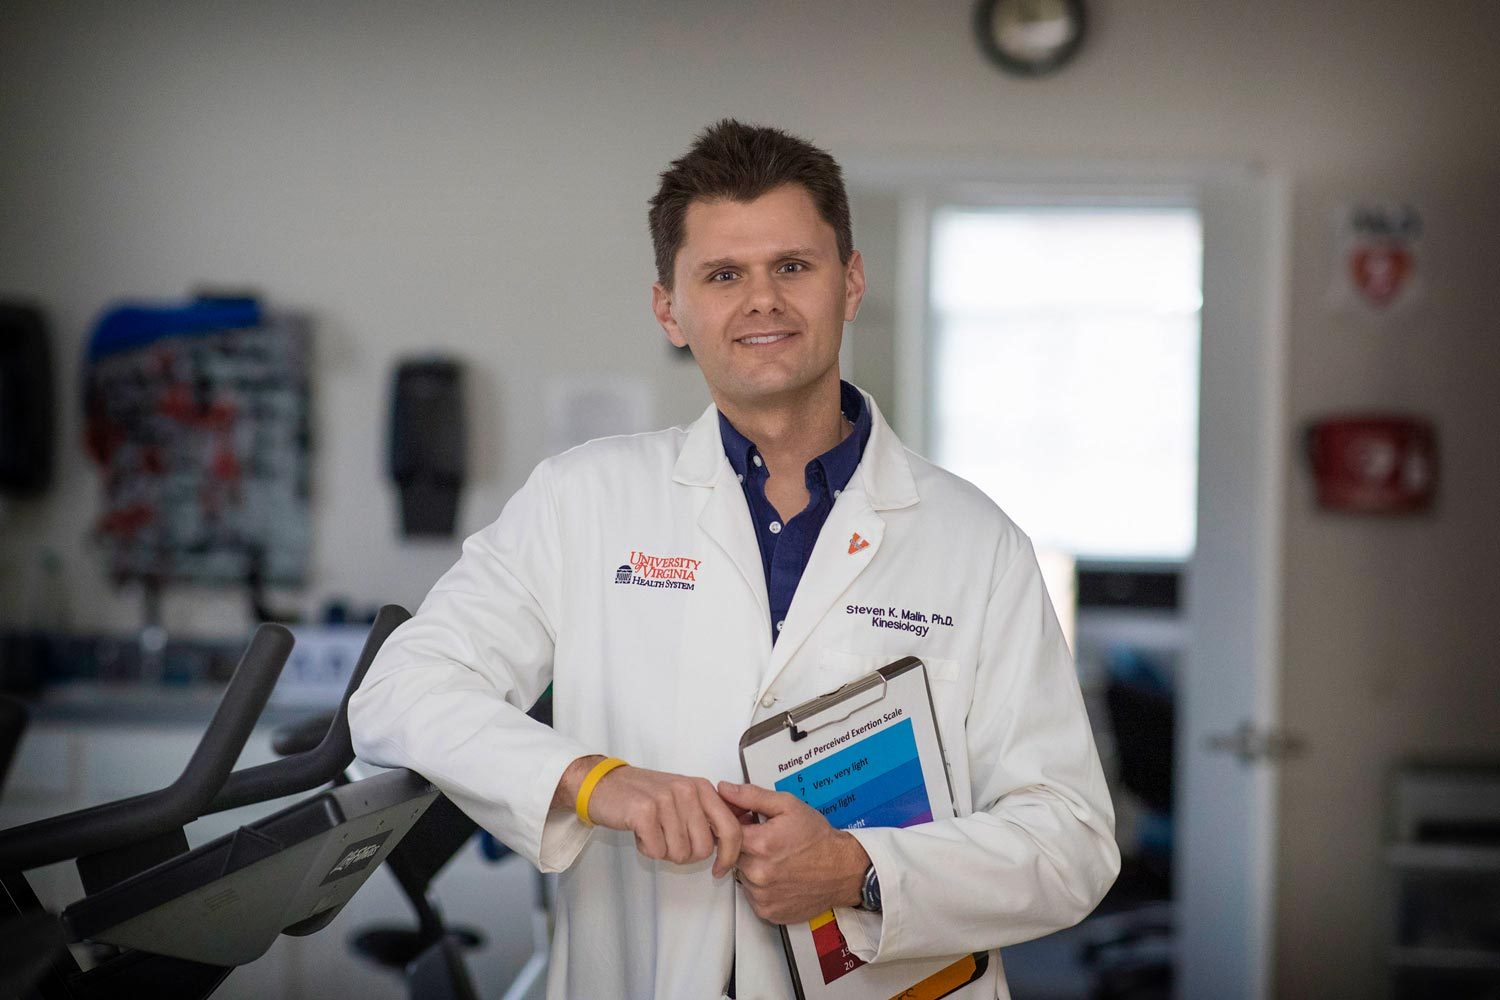 Curry School researcher Steven Malin said the best exercise regime may be the one you are willing to stick to.